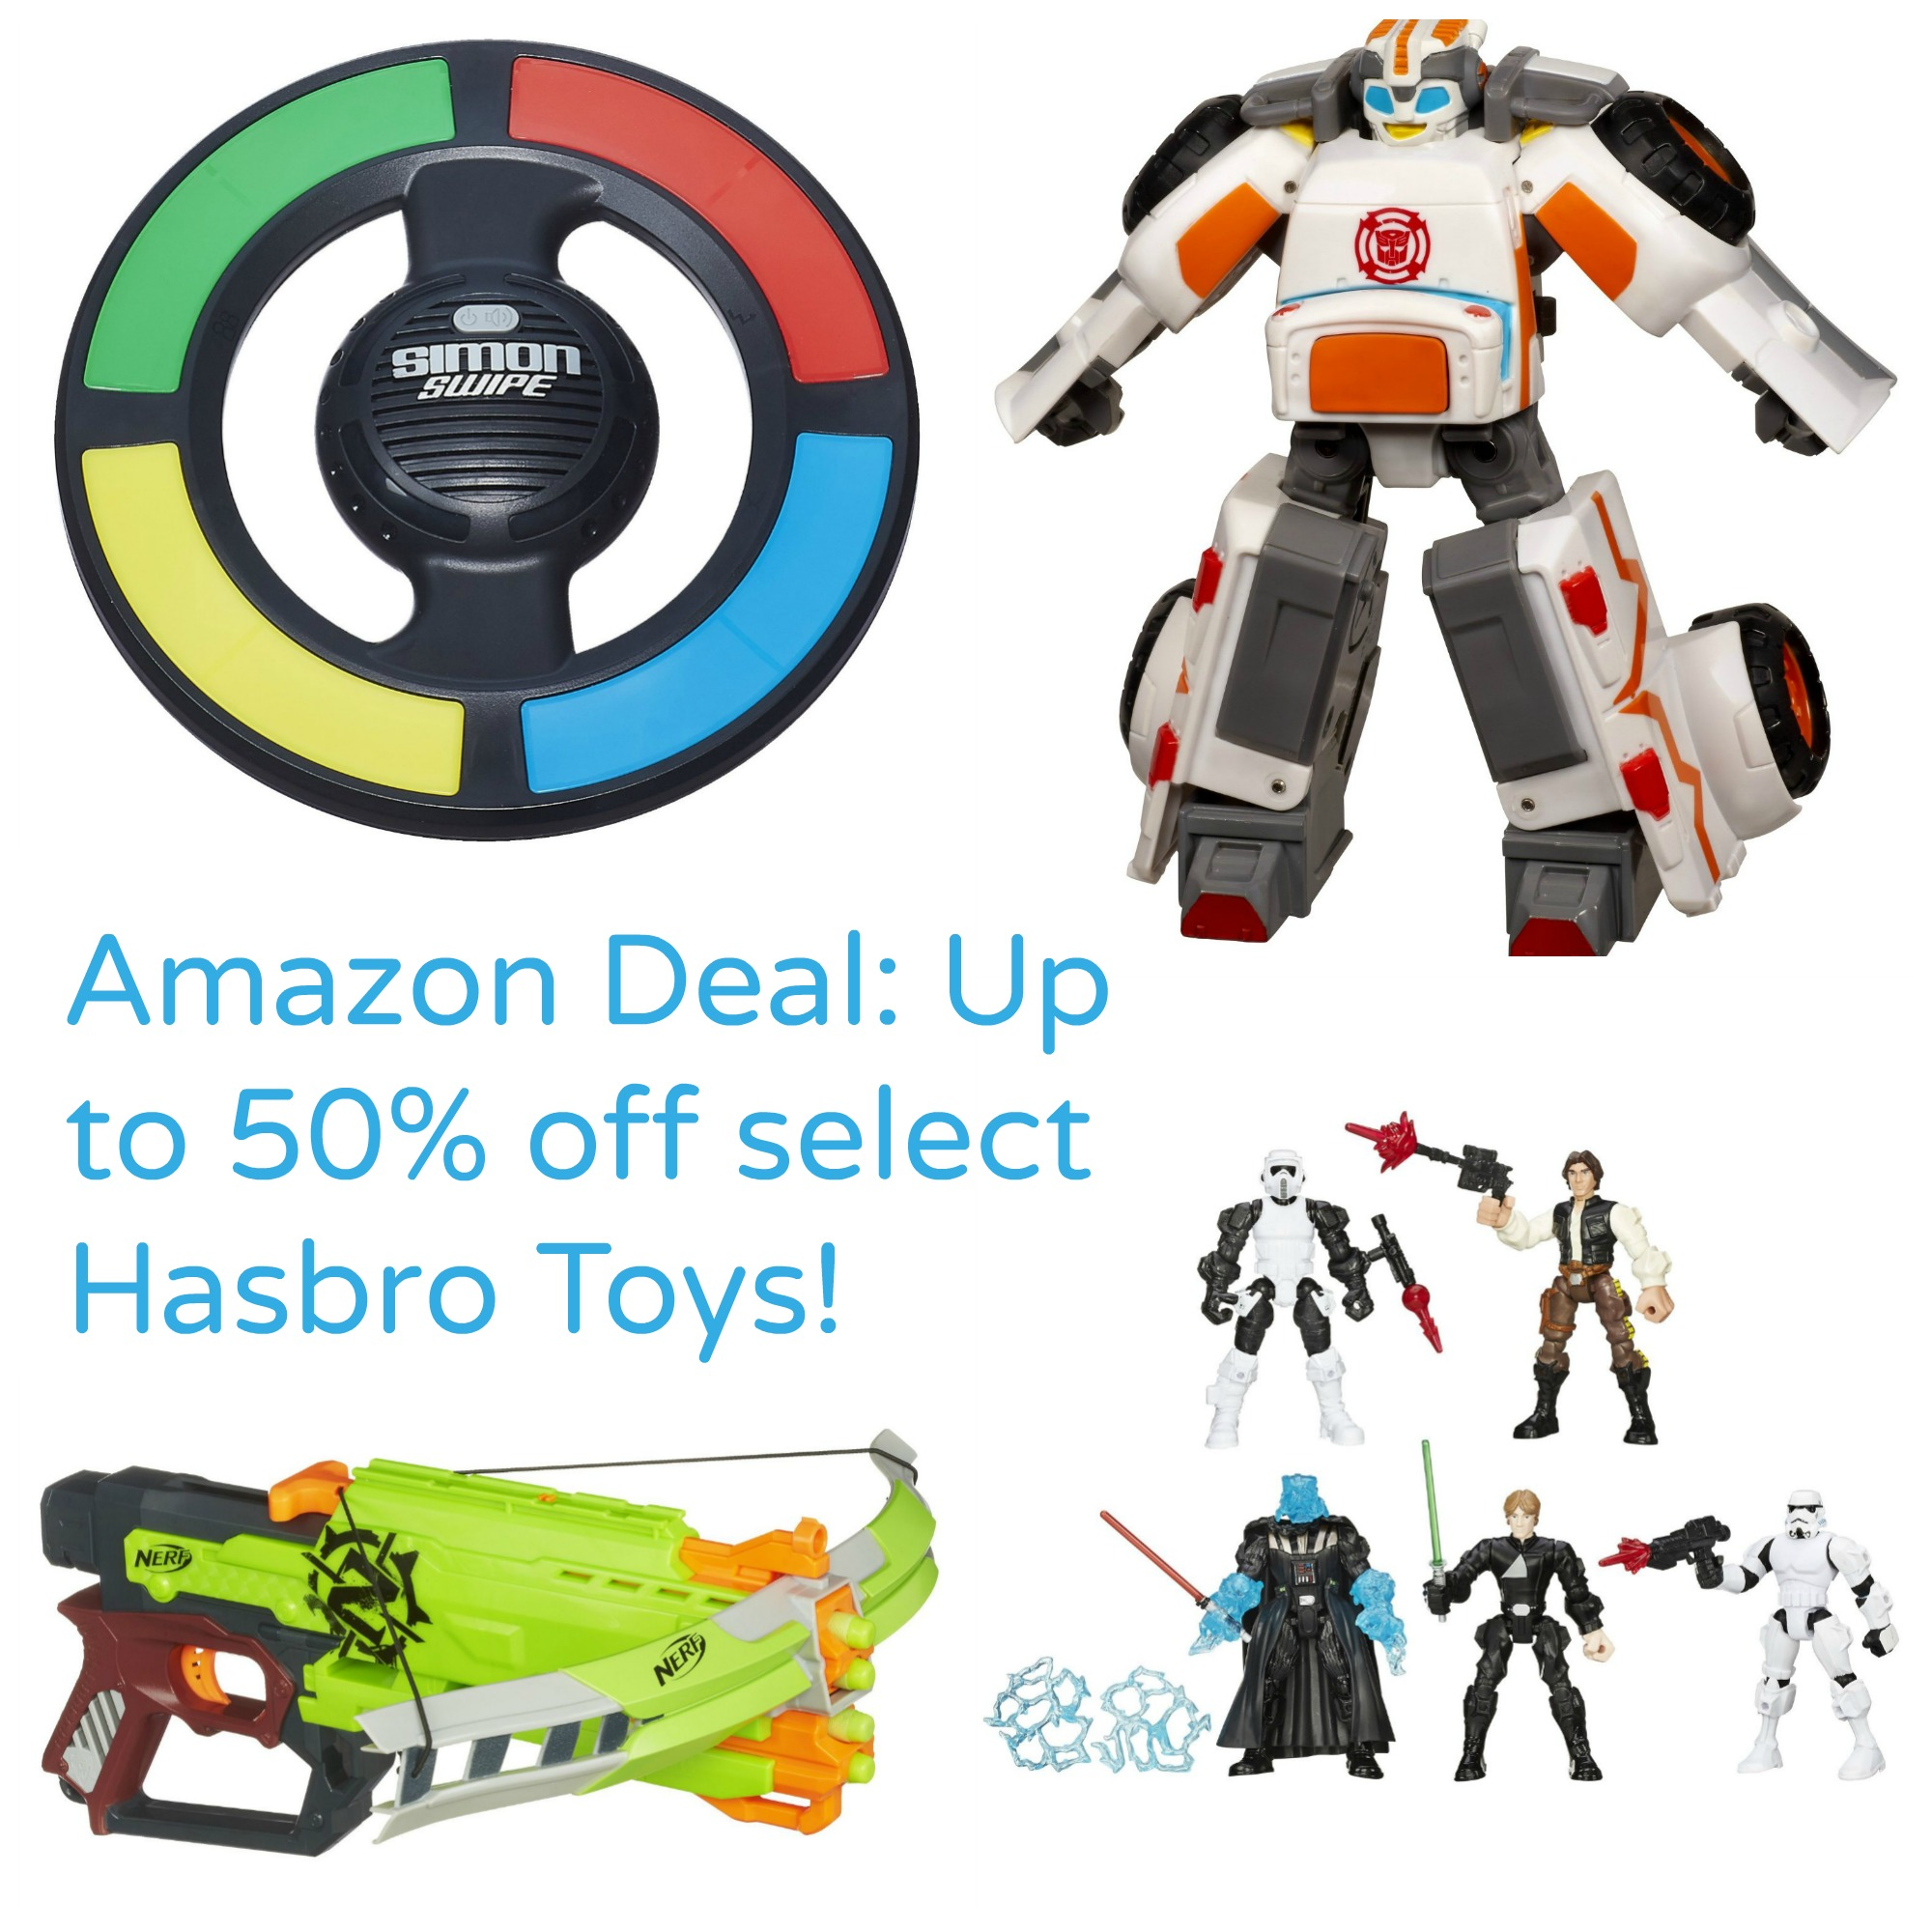 Amazon Deal of the Day:  Up to 50% off select Hasbro Toys